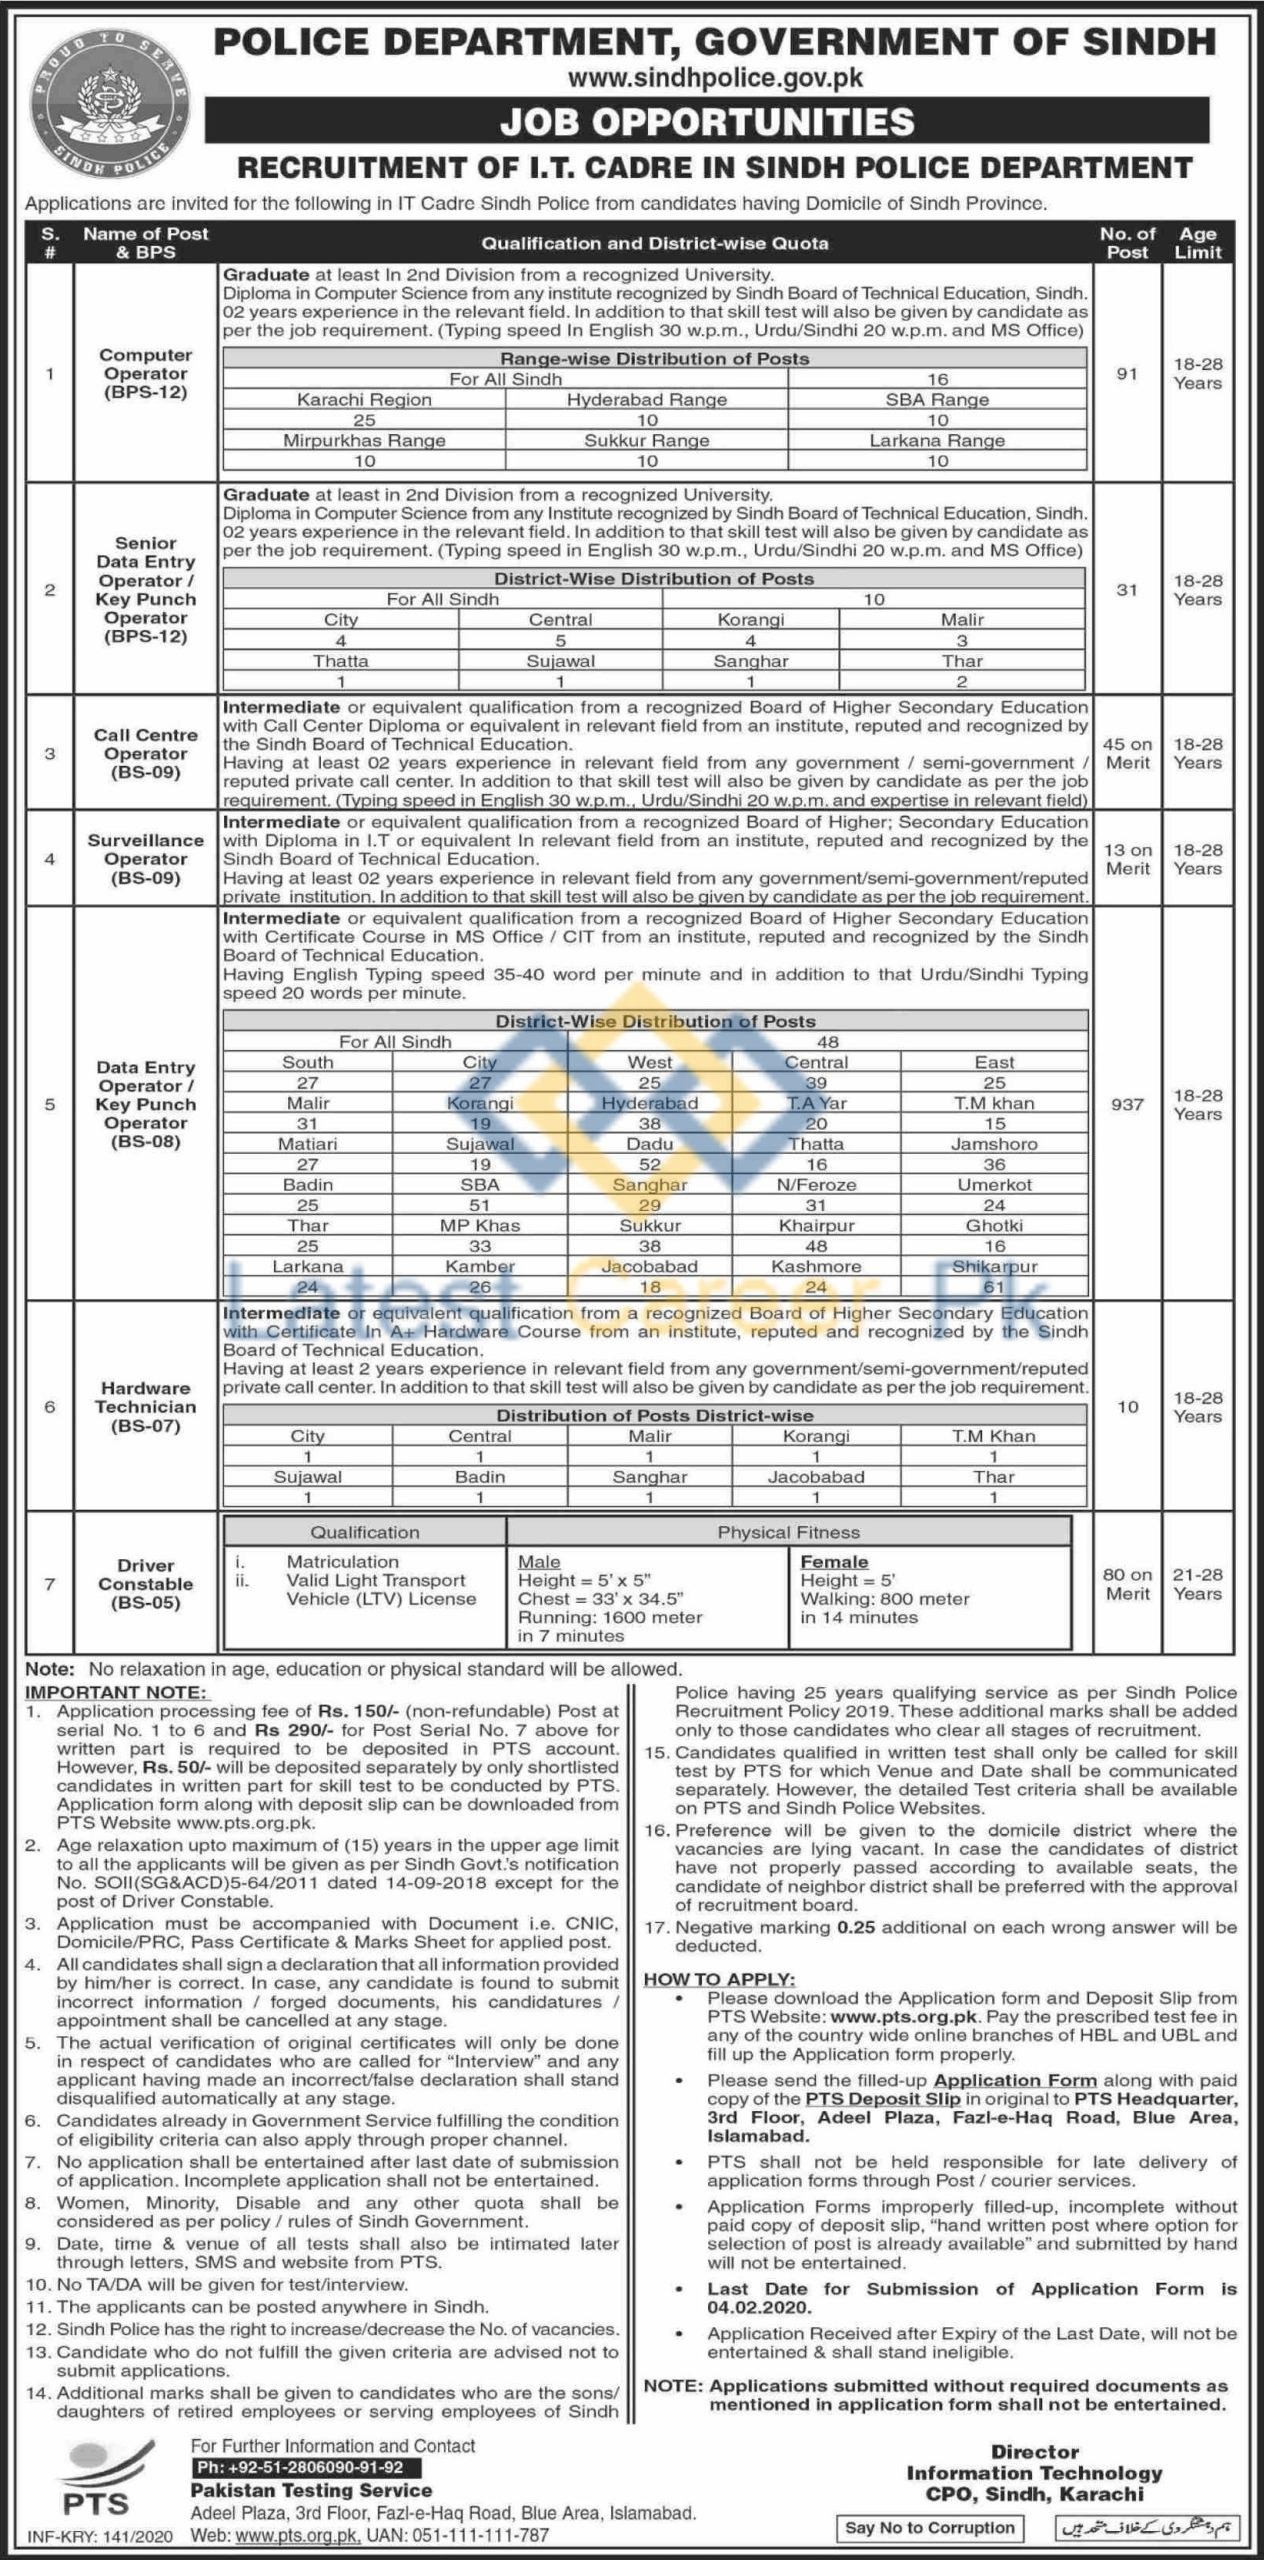 Government-of-Sindh-Police-Department-Sindh-Jobs-15-Jan-2020